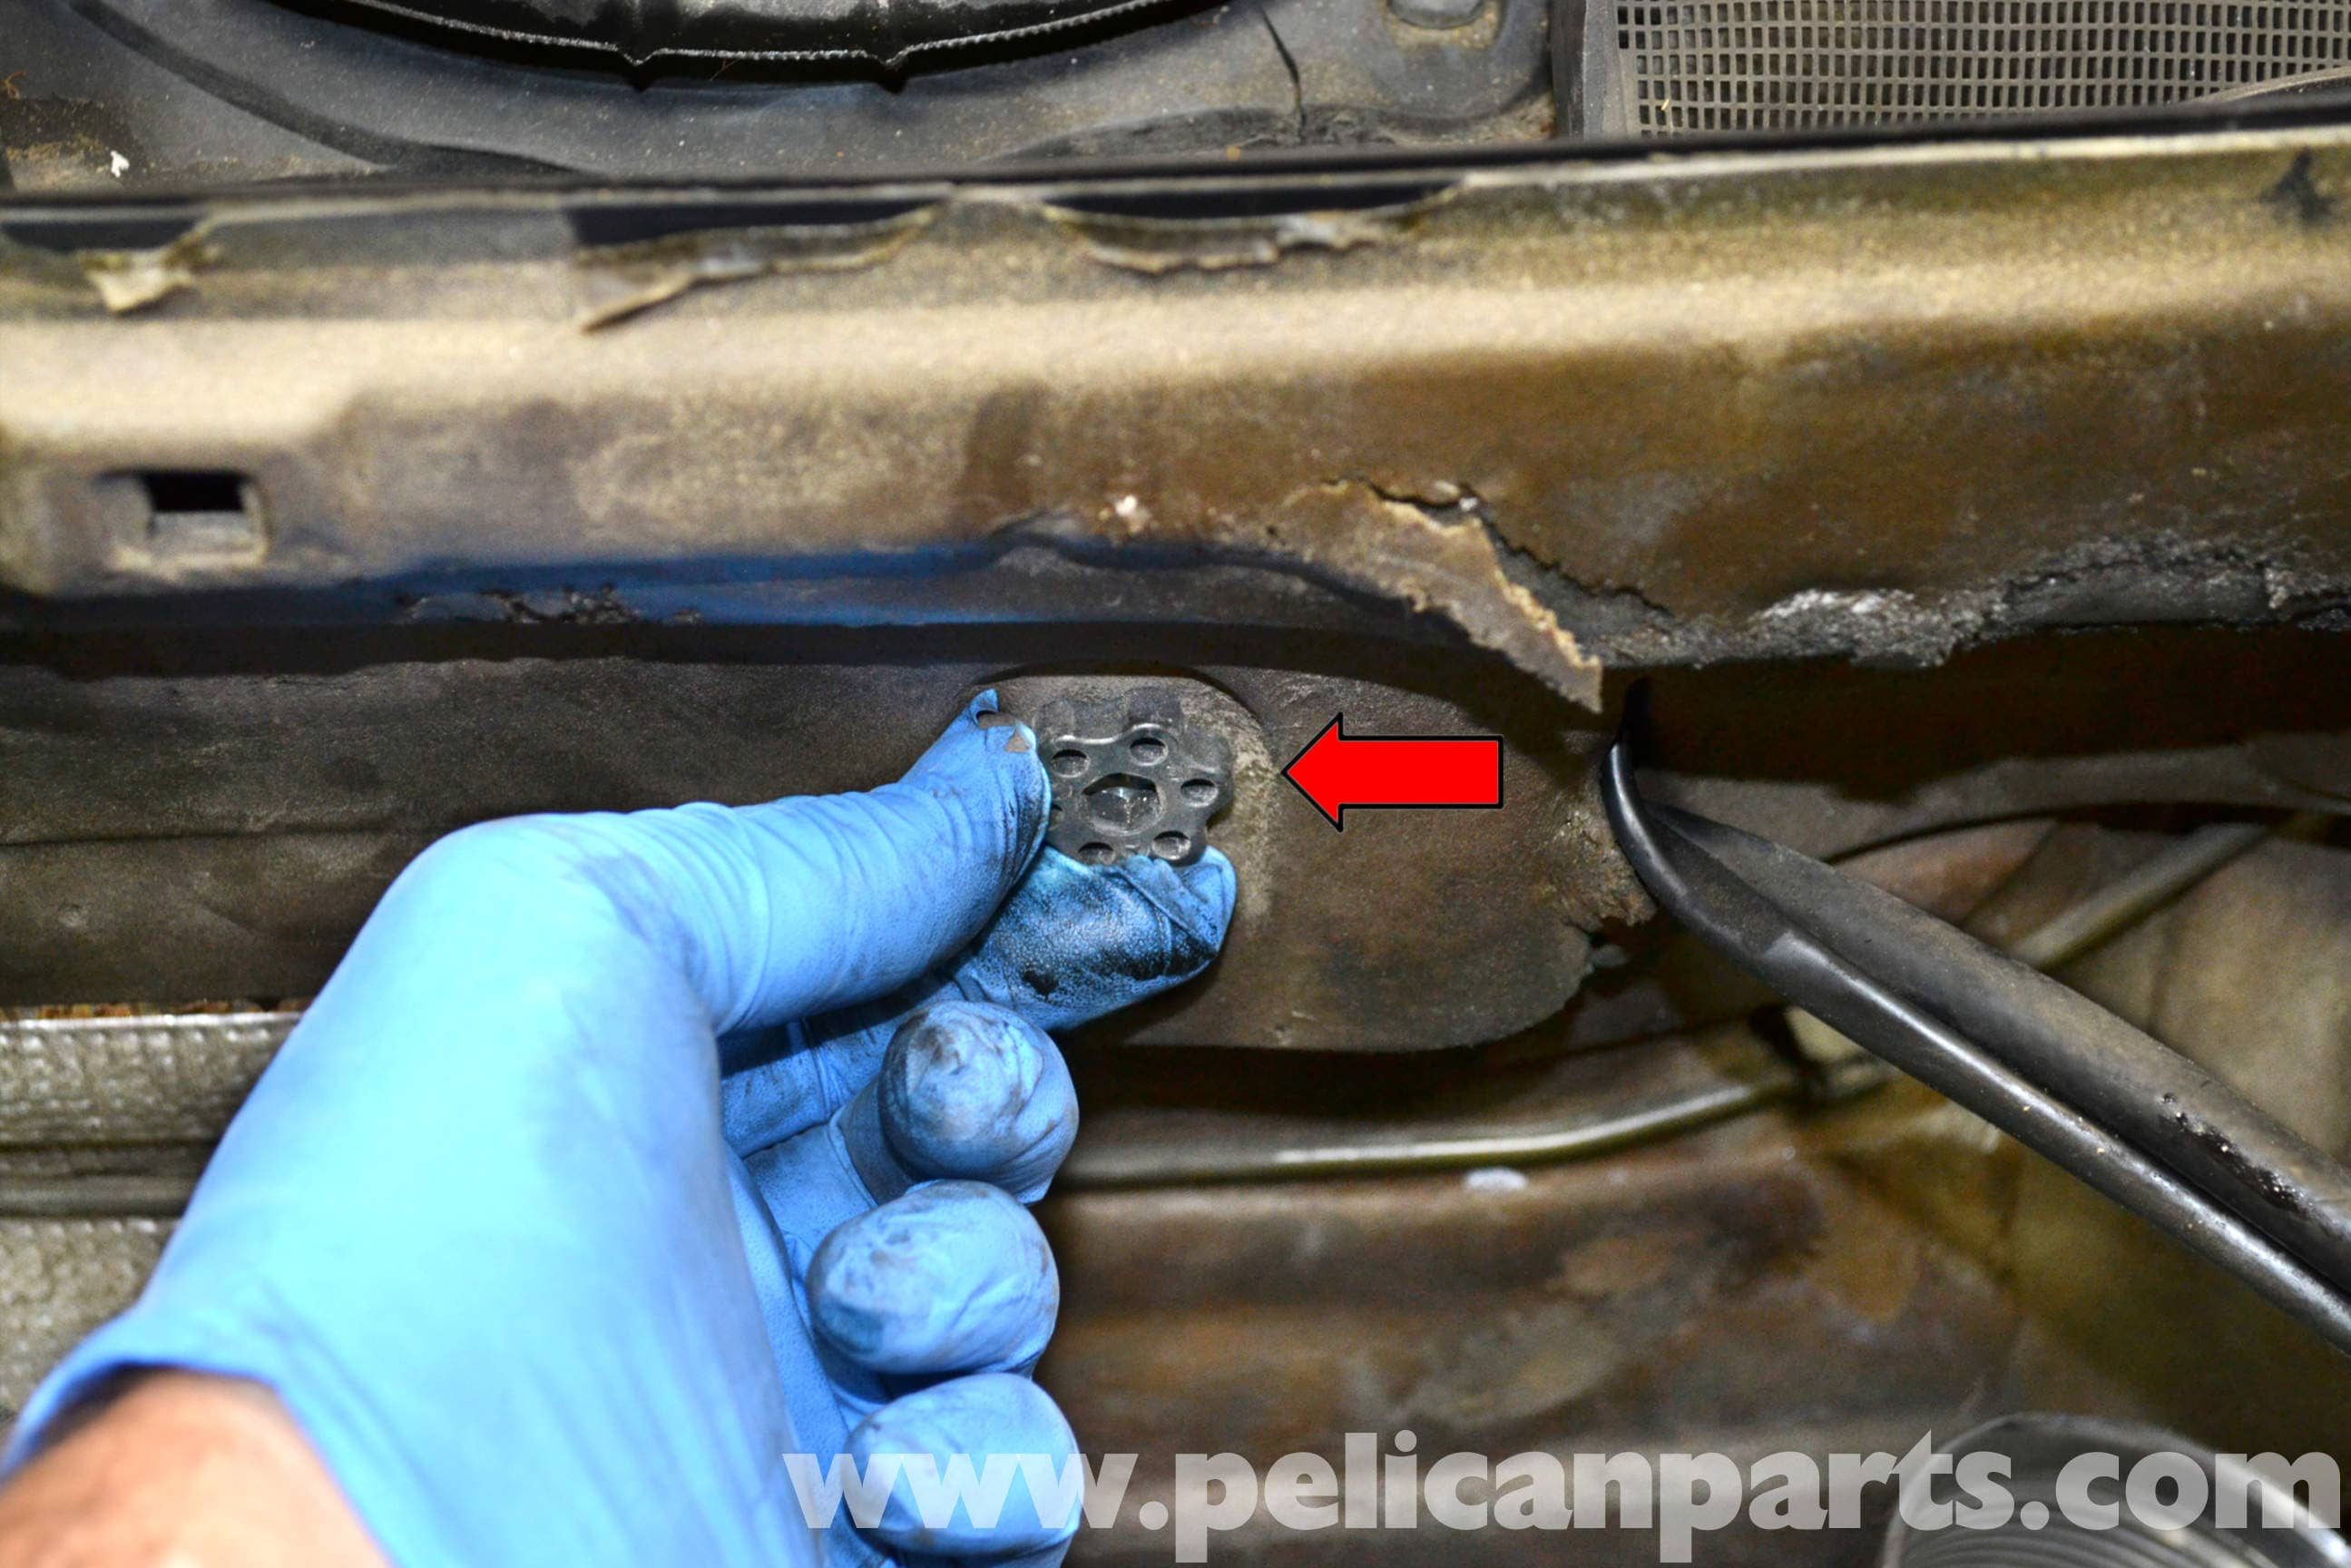 Mercedes-Benz W124 Blower Motor Replacement | 1986-1995 E-Cl ... on mercedes 300d manual, mercedes 300d oil cooler, mercury zephyr wiring diagram, mercedes 300d transmission problems, cadillac deville wiring diagram, oldsmobile cutlass wiring diagram, pontiac fiero wiring diagram, mercedes 300d engine swap, buick reatta wiring diagram, porsche 928 wiring diagram, toyota van wiring diagram, mercury milan wiring diagram, mercedes 300d exhaust system, mercedes 300d wheels, vw thing wiring diagram, mercedes 300d radiator, dodge aries wiring diagram, cadillac eldorado wiring diagram, mercedes 300d fan belt, mercury capri wiring diagram,